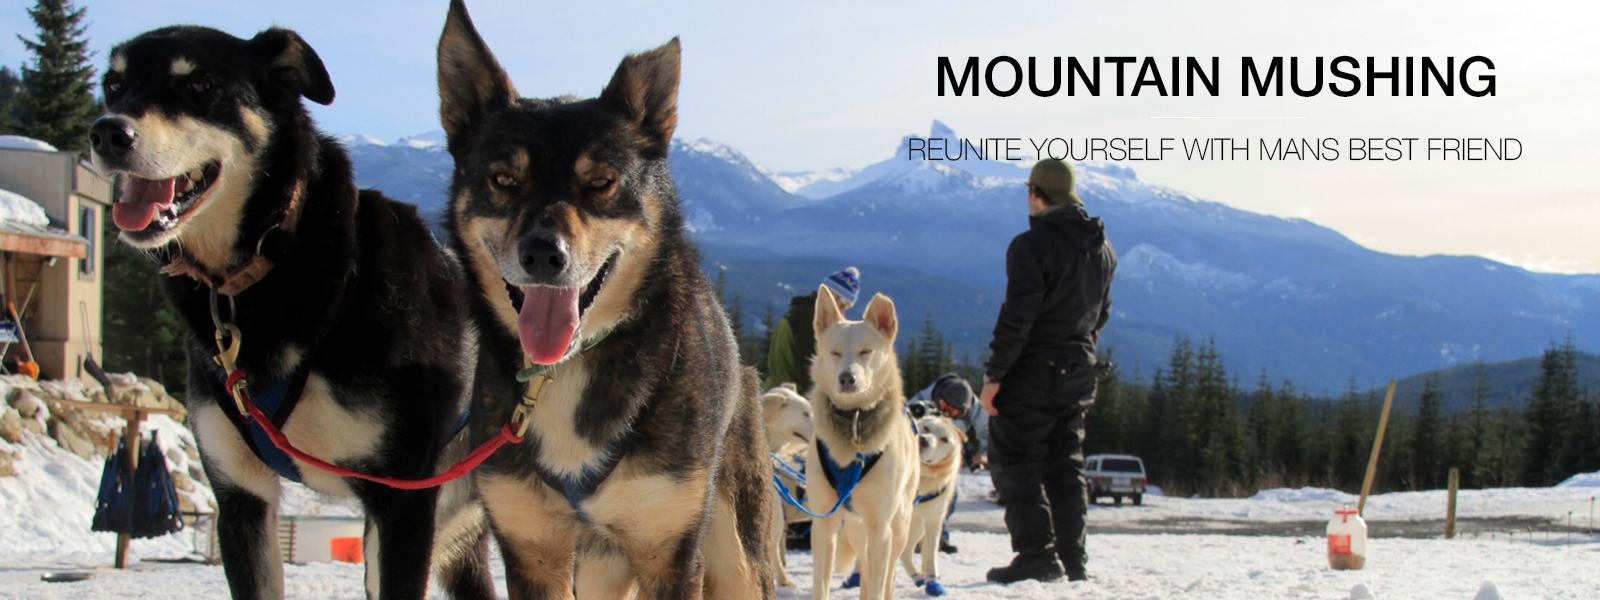 Mount Mushing Banner